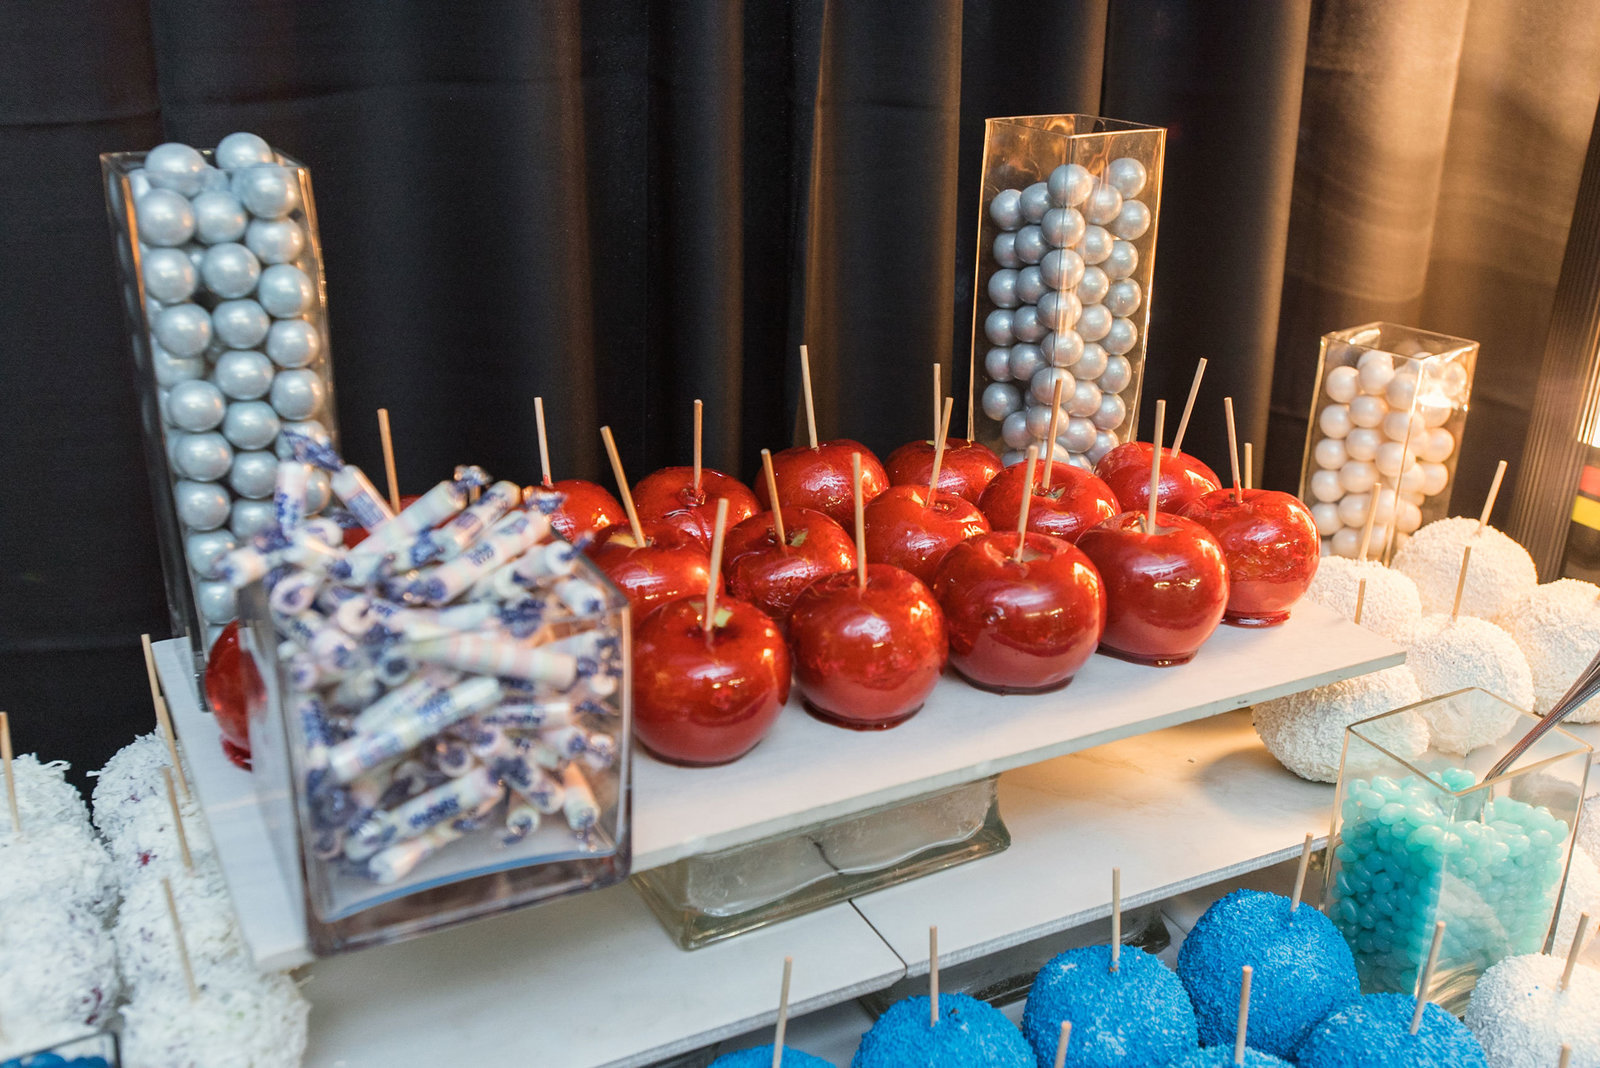 Candy apple at dessert table at Cradle of Aviation